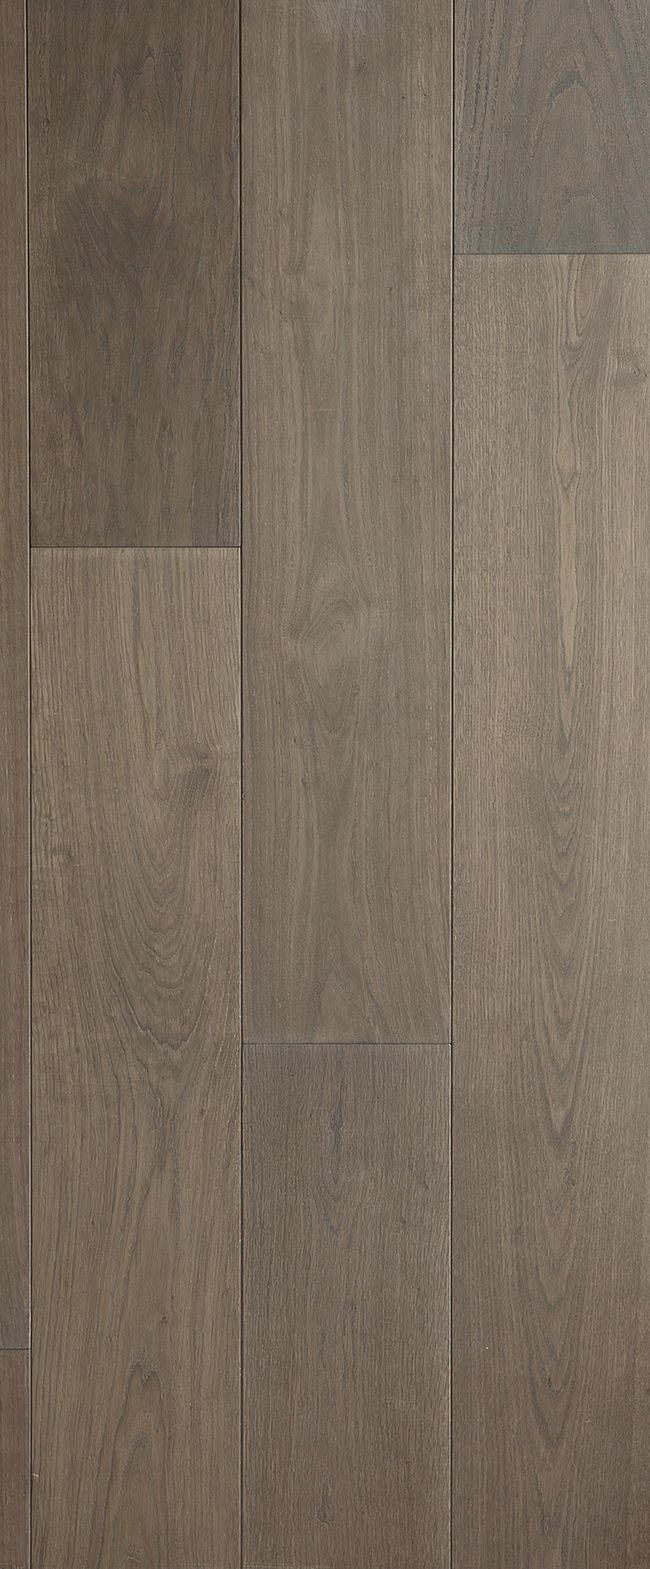 Textur Parkett Driftwood Engineered Prime Oak Tiles Holz Textur Textur Parkett